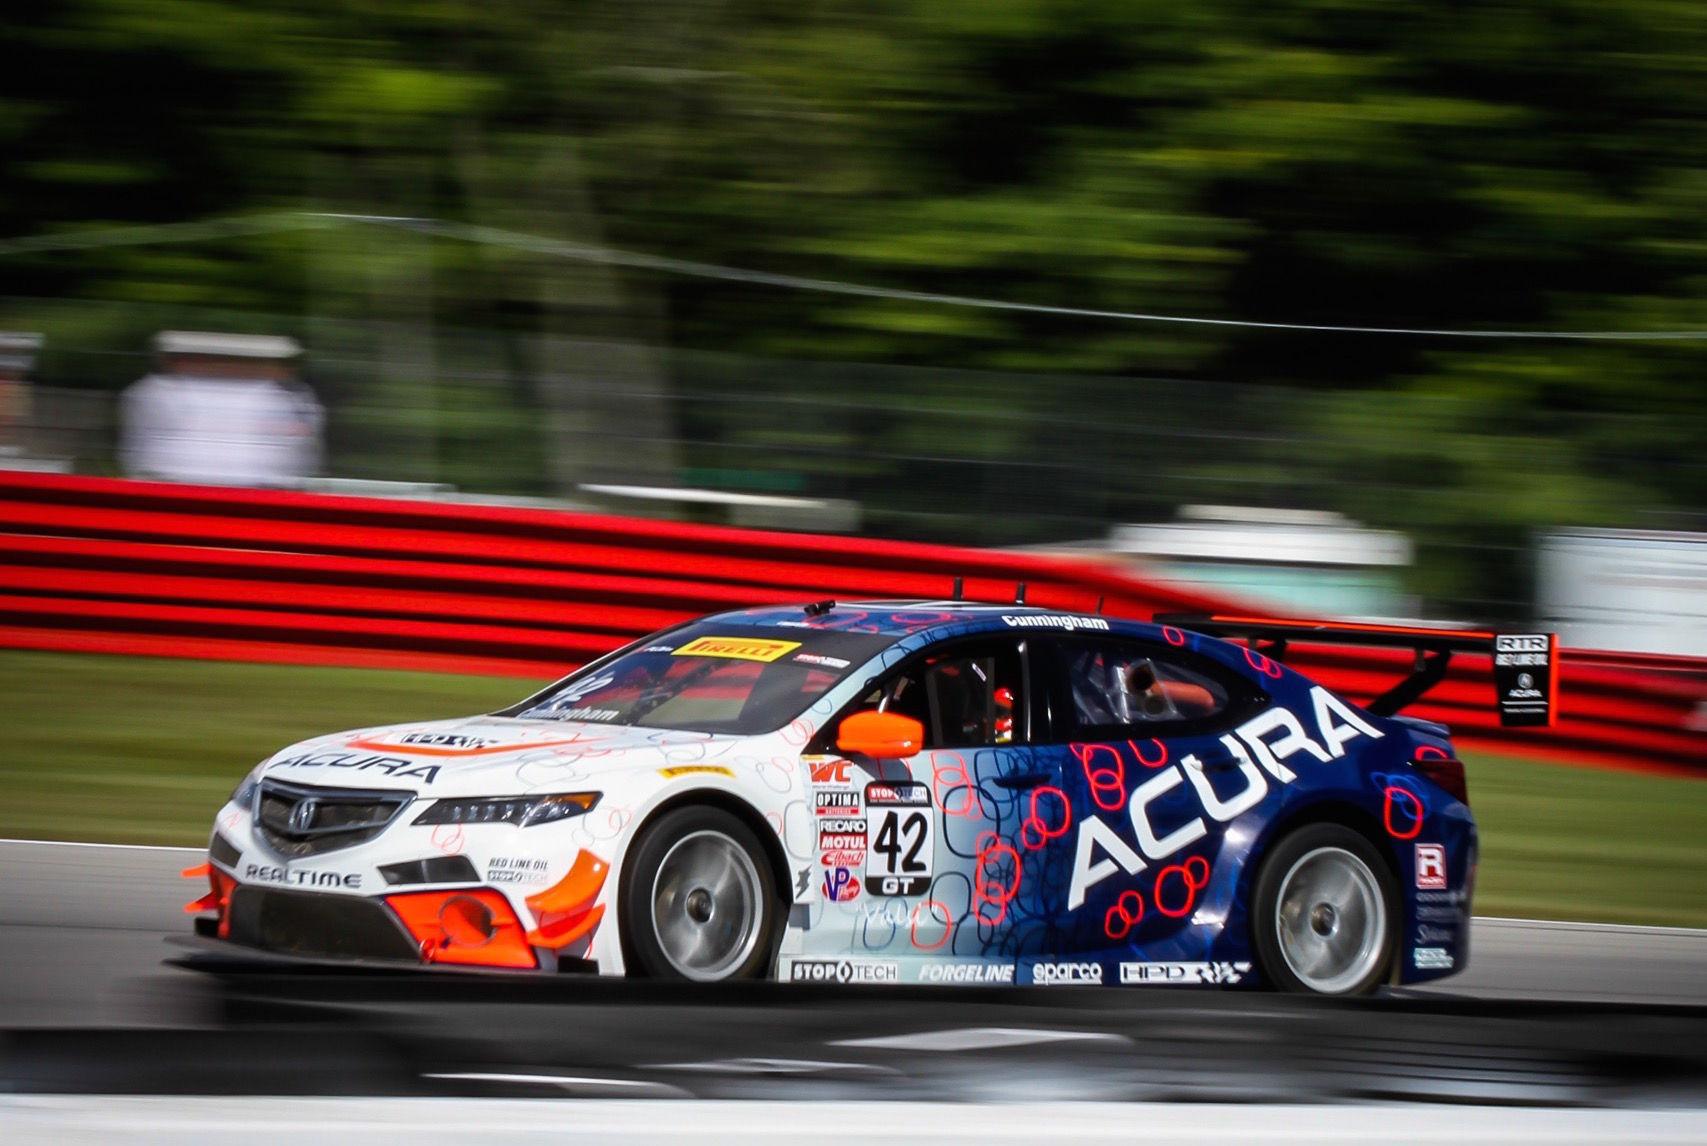 Acura TLX | RealTime Racing at Mid-Ohio 2015